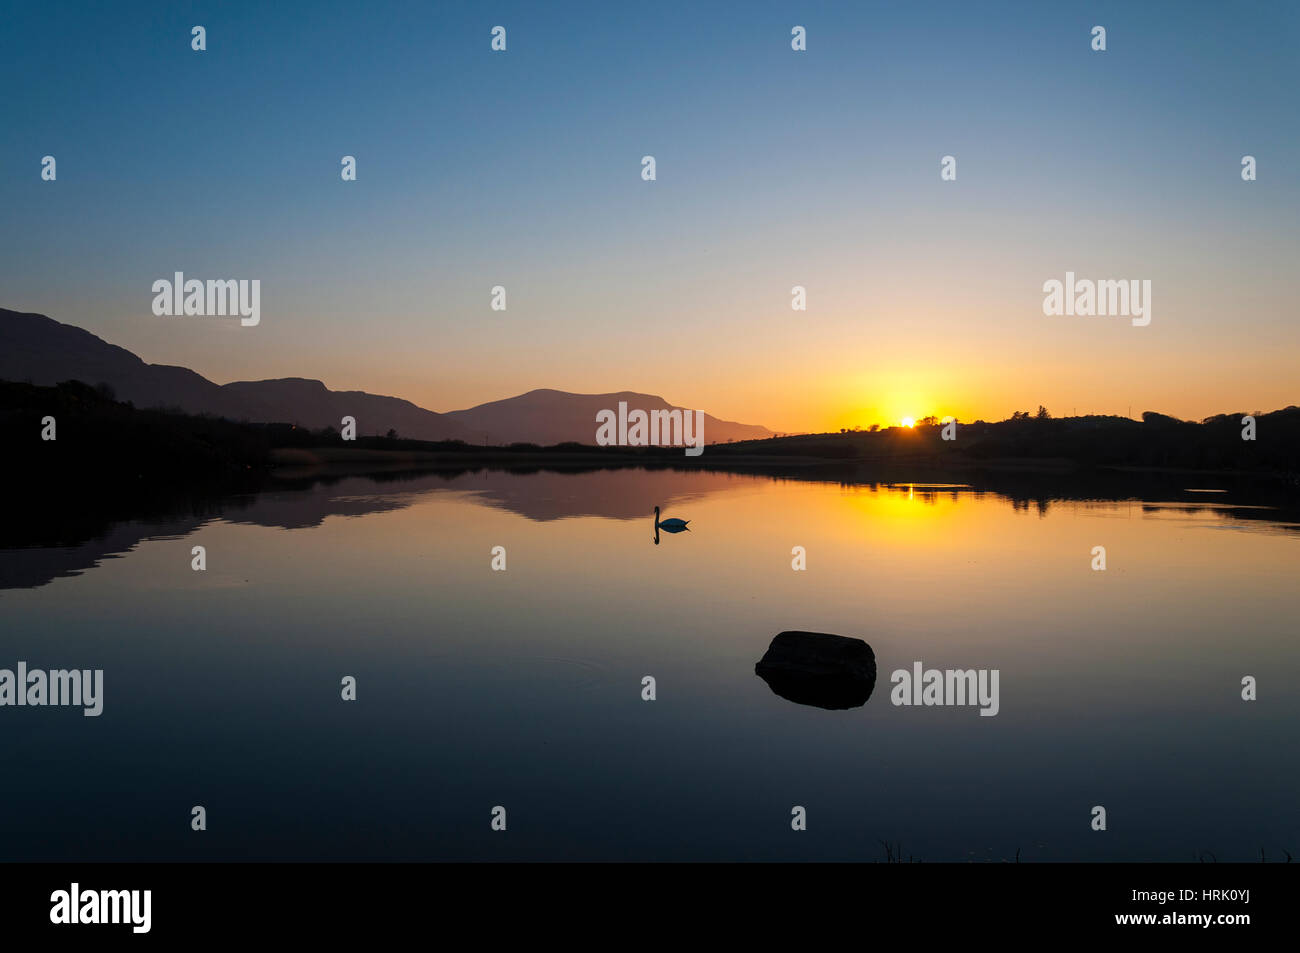 Calm still tranquil lake with swan at sunset - Stock Image